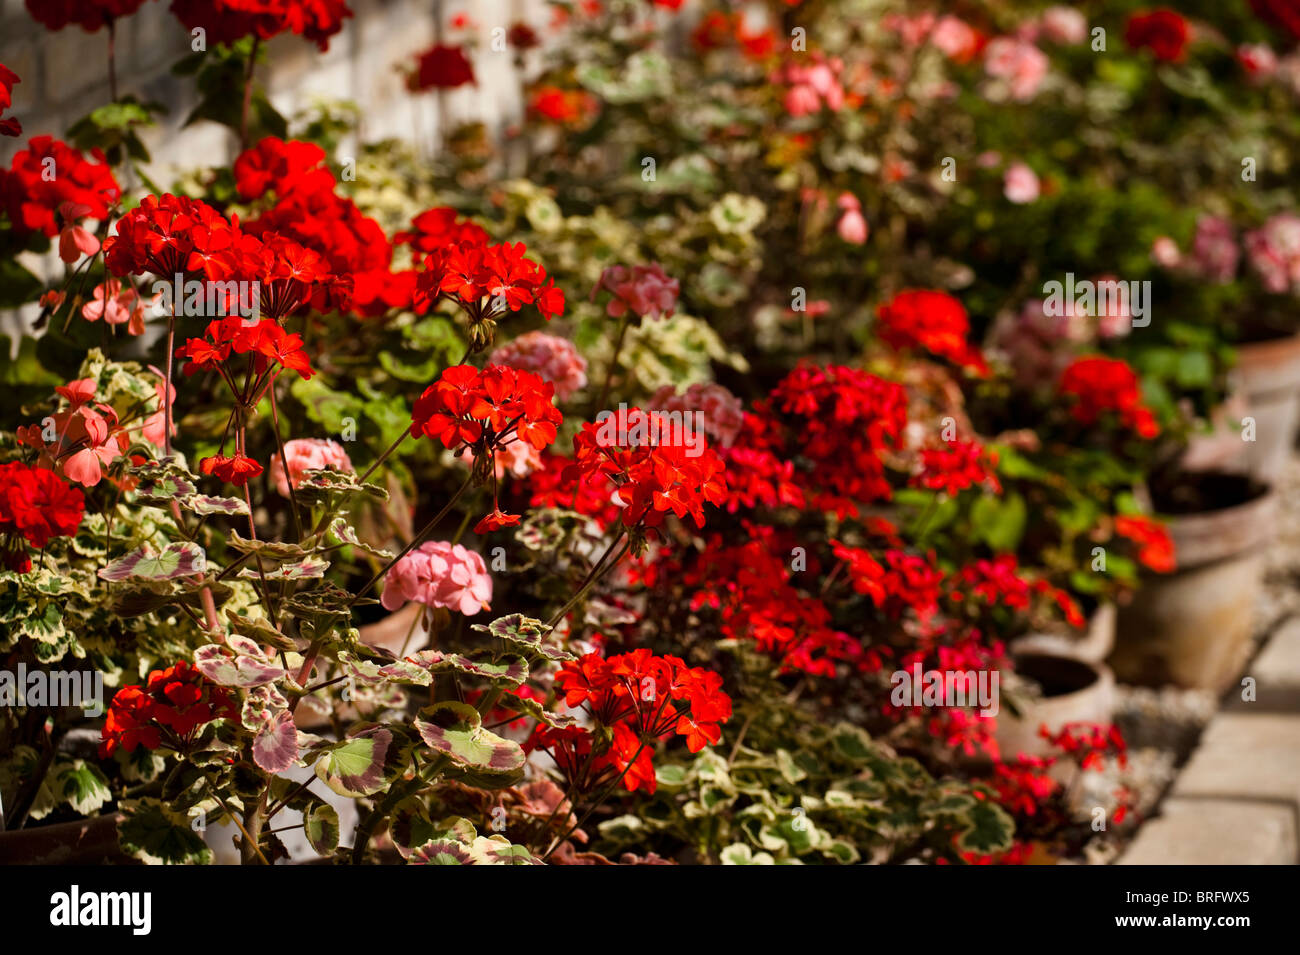 Zonal Pelargoniums, Geraniums, growing at The Lost Gardens of Heligan in Cornwall, United Kingdom - Stock Image